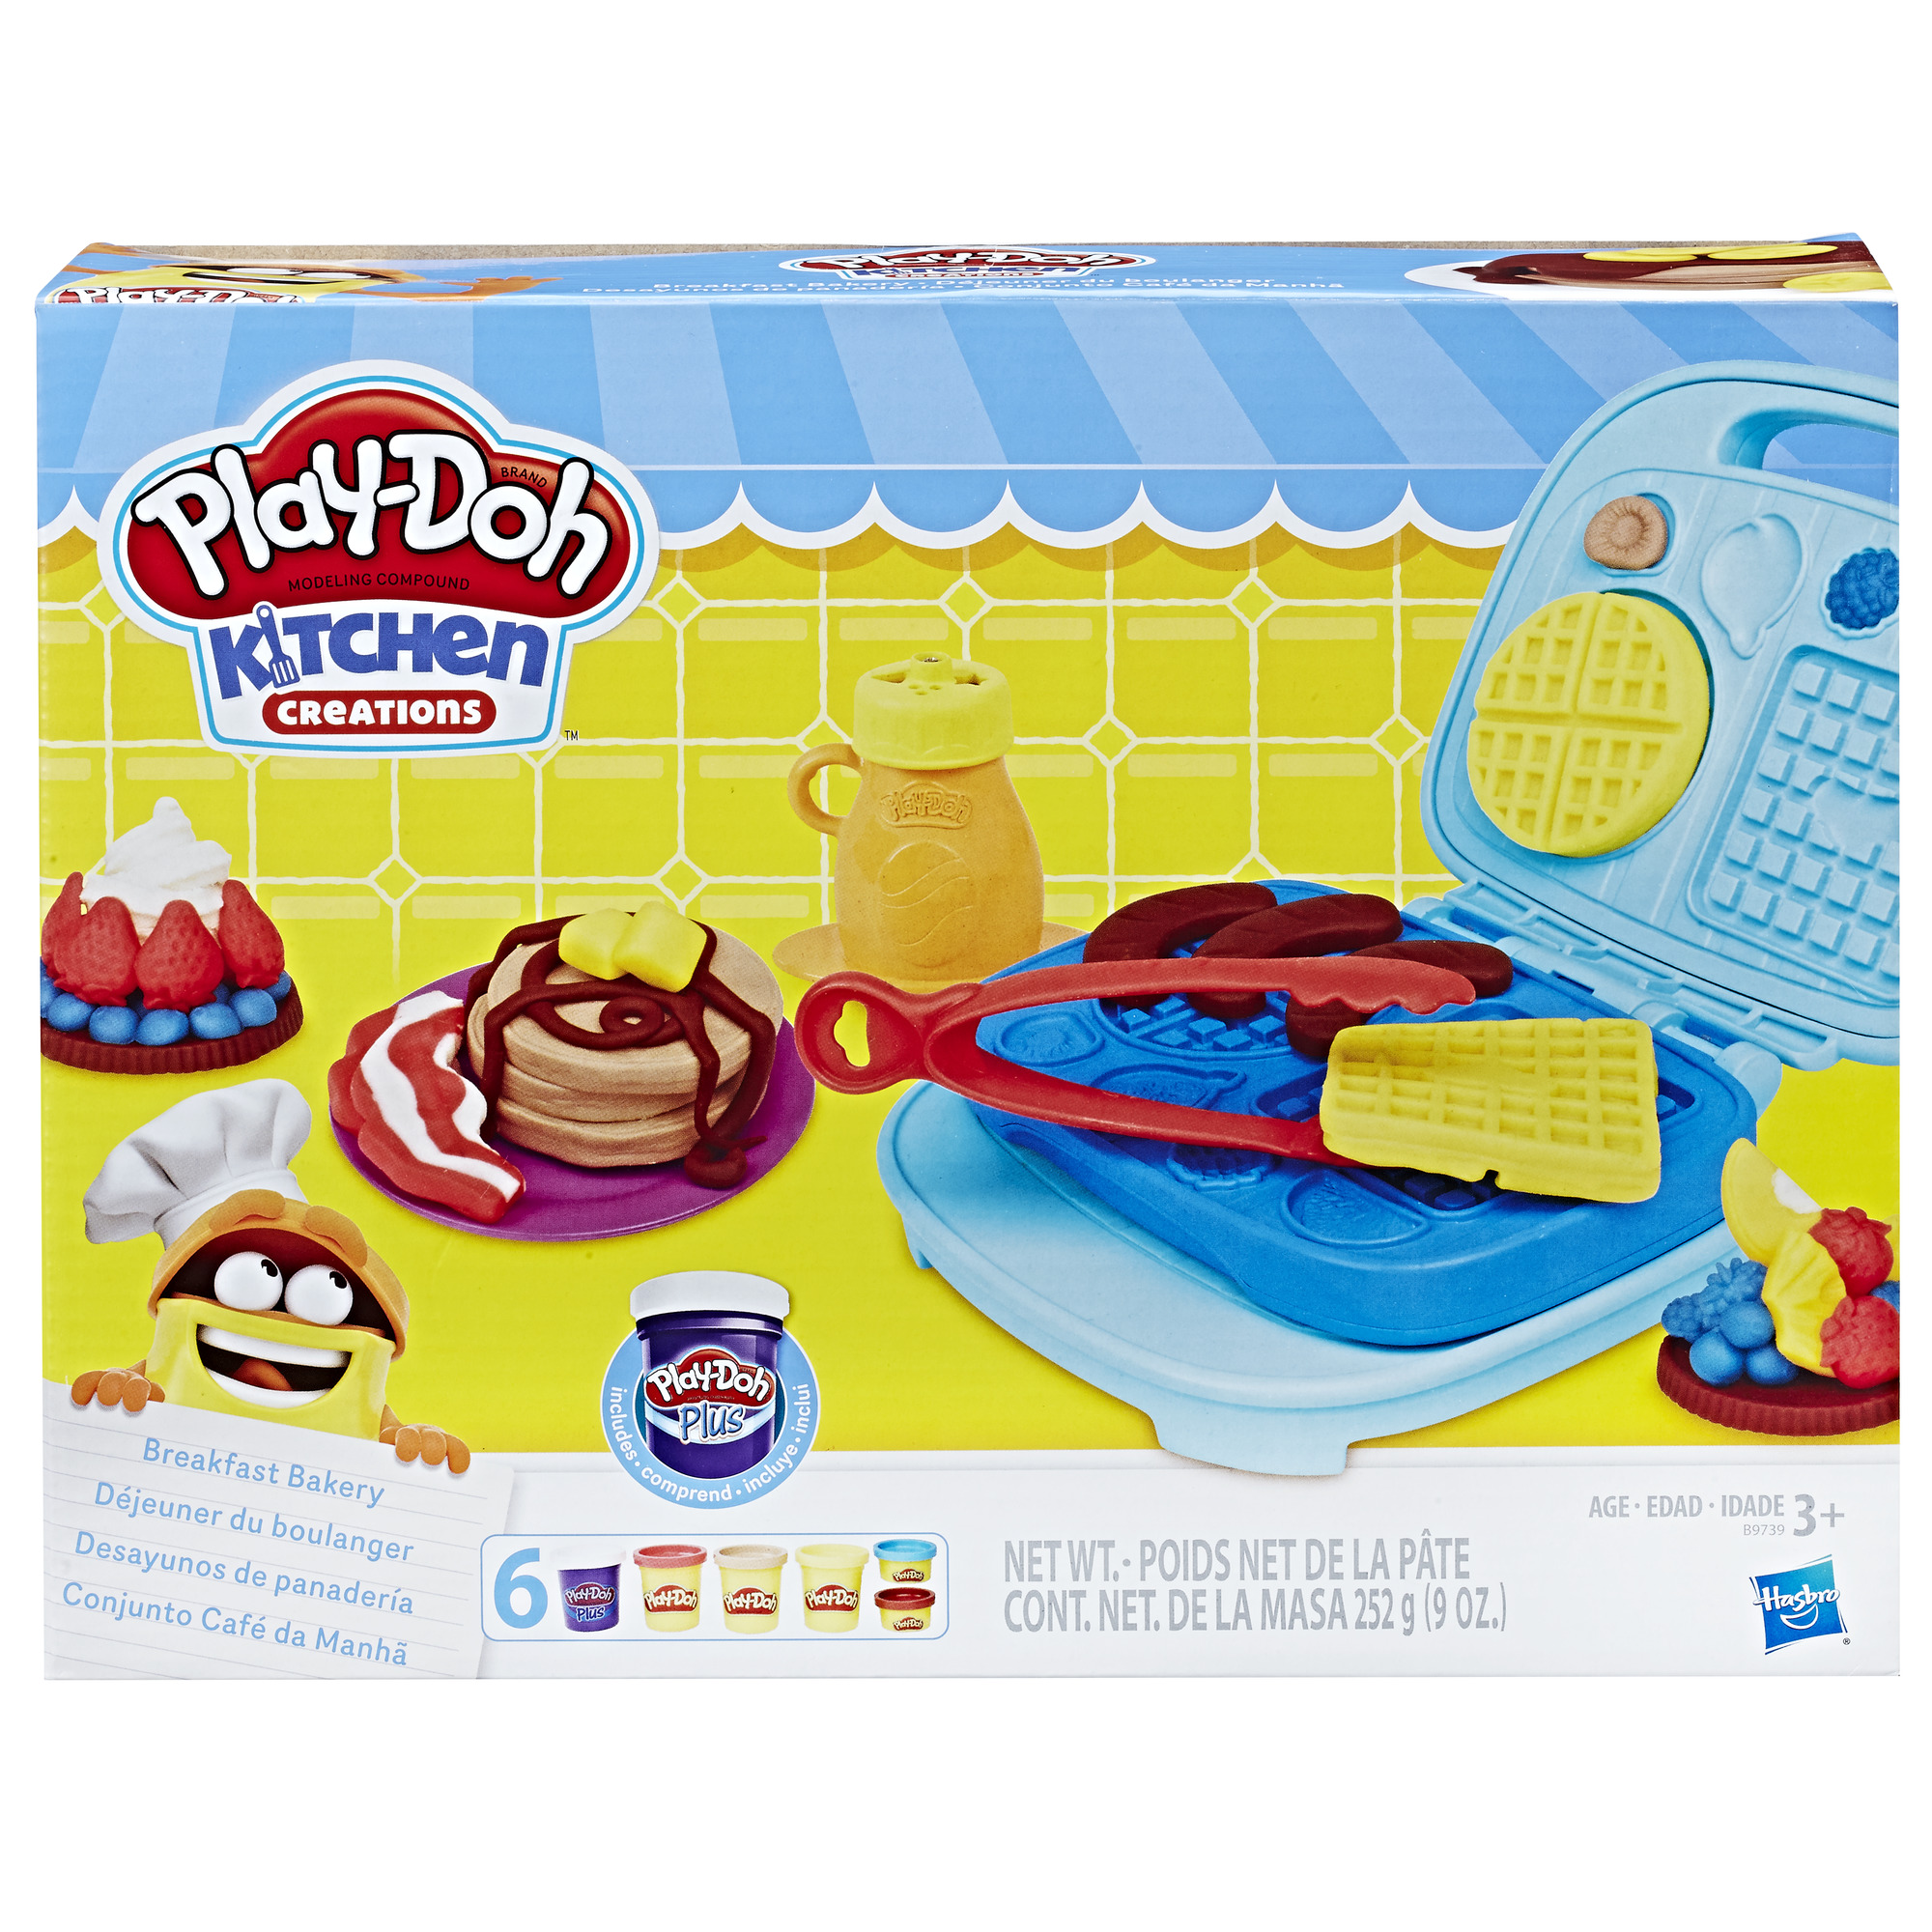 Play-Doh Kitchen Creations Breakfast Bakery Food Set with 6 Cans of Dough